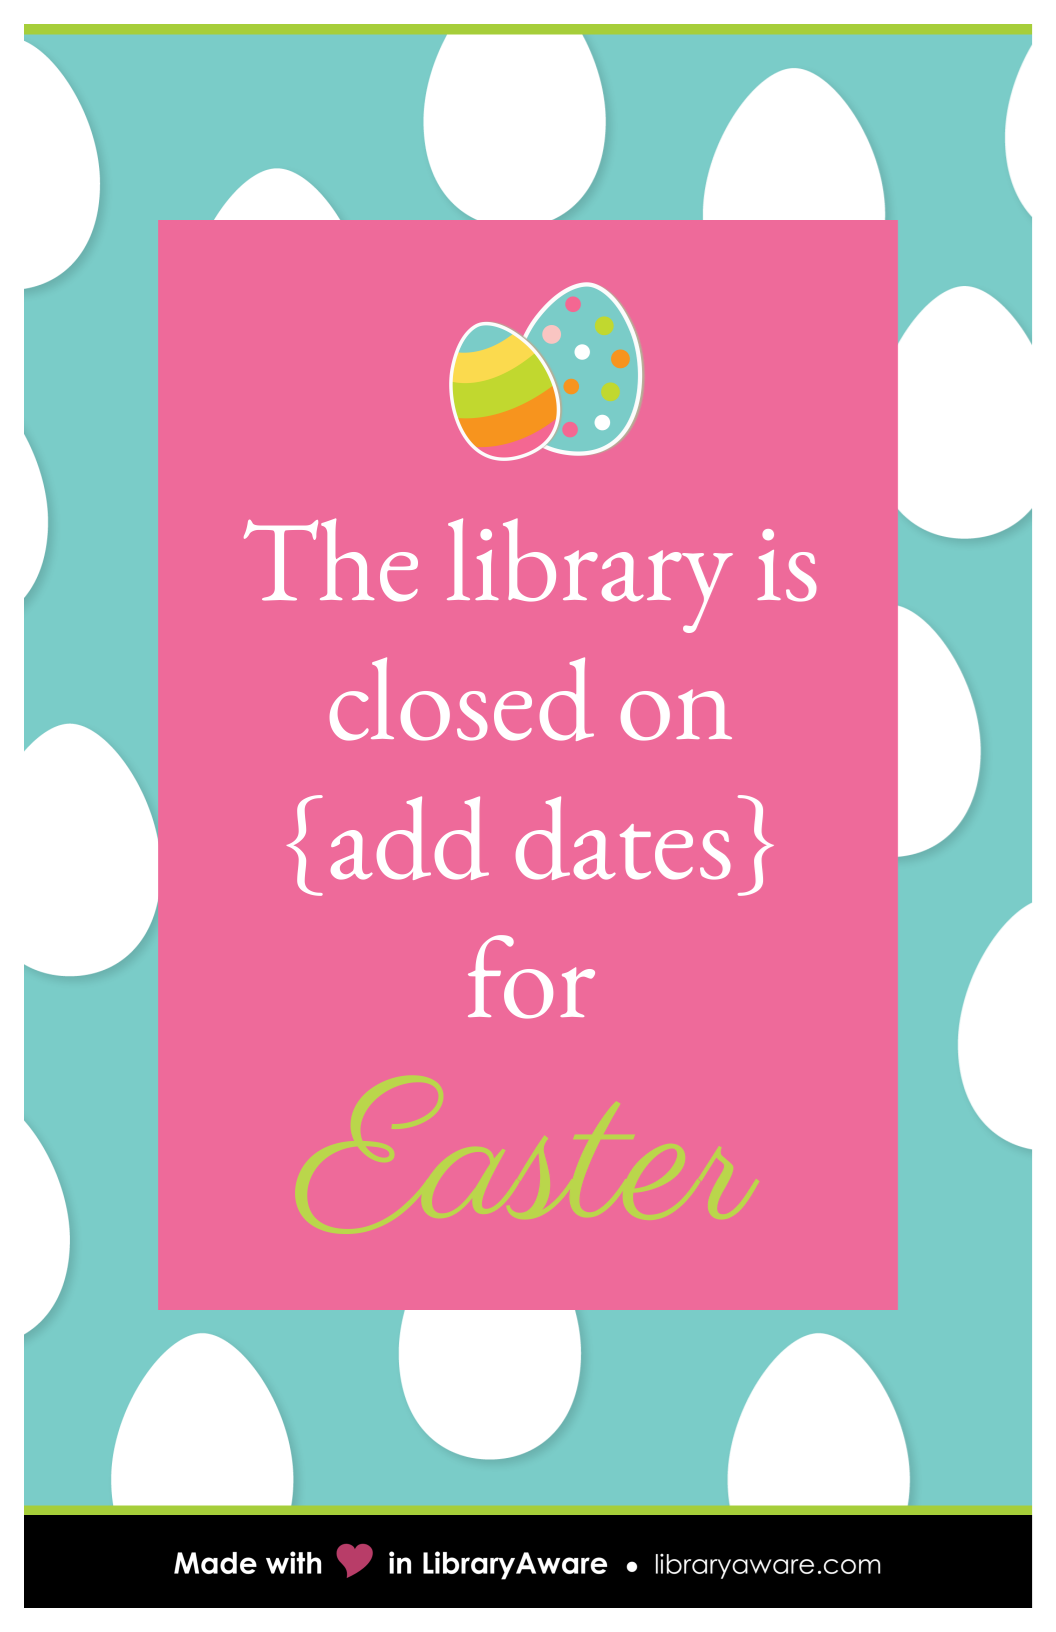 Need A Quick Sign To Let Your Library Patrons Know You Are Closed On Easter Weve Got The Template MadeinLibraryAware